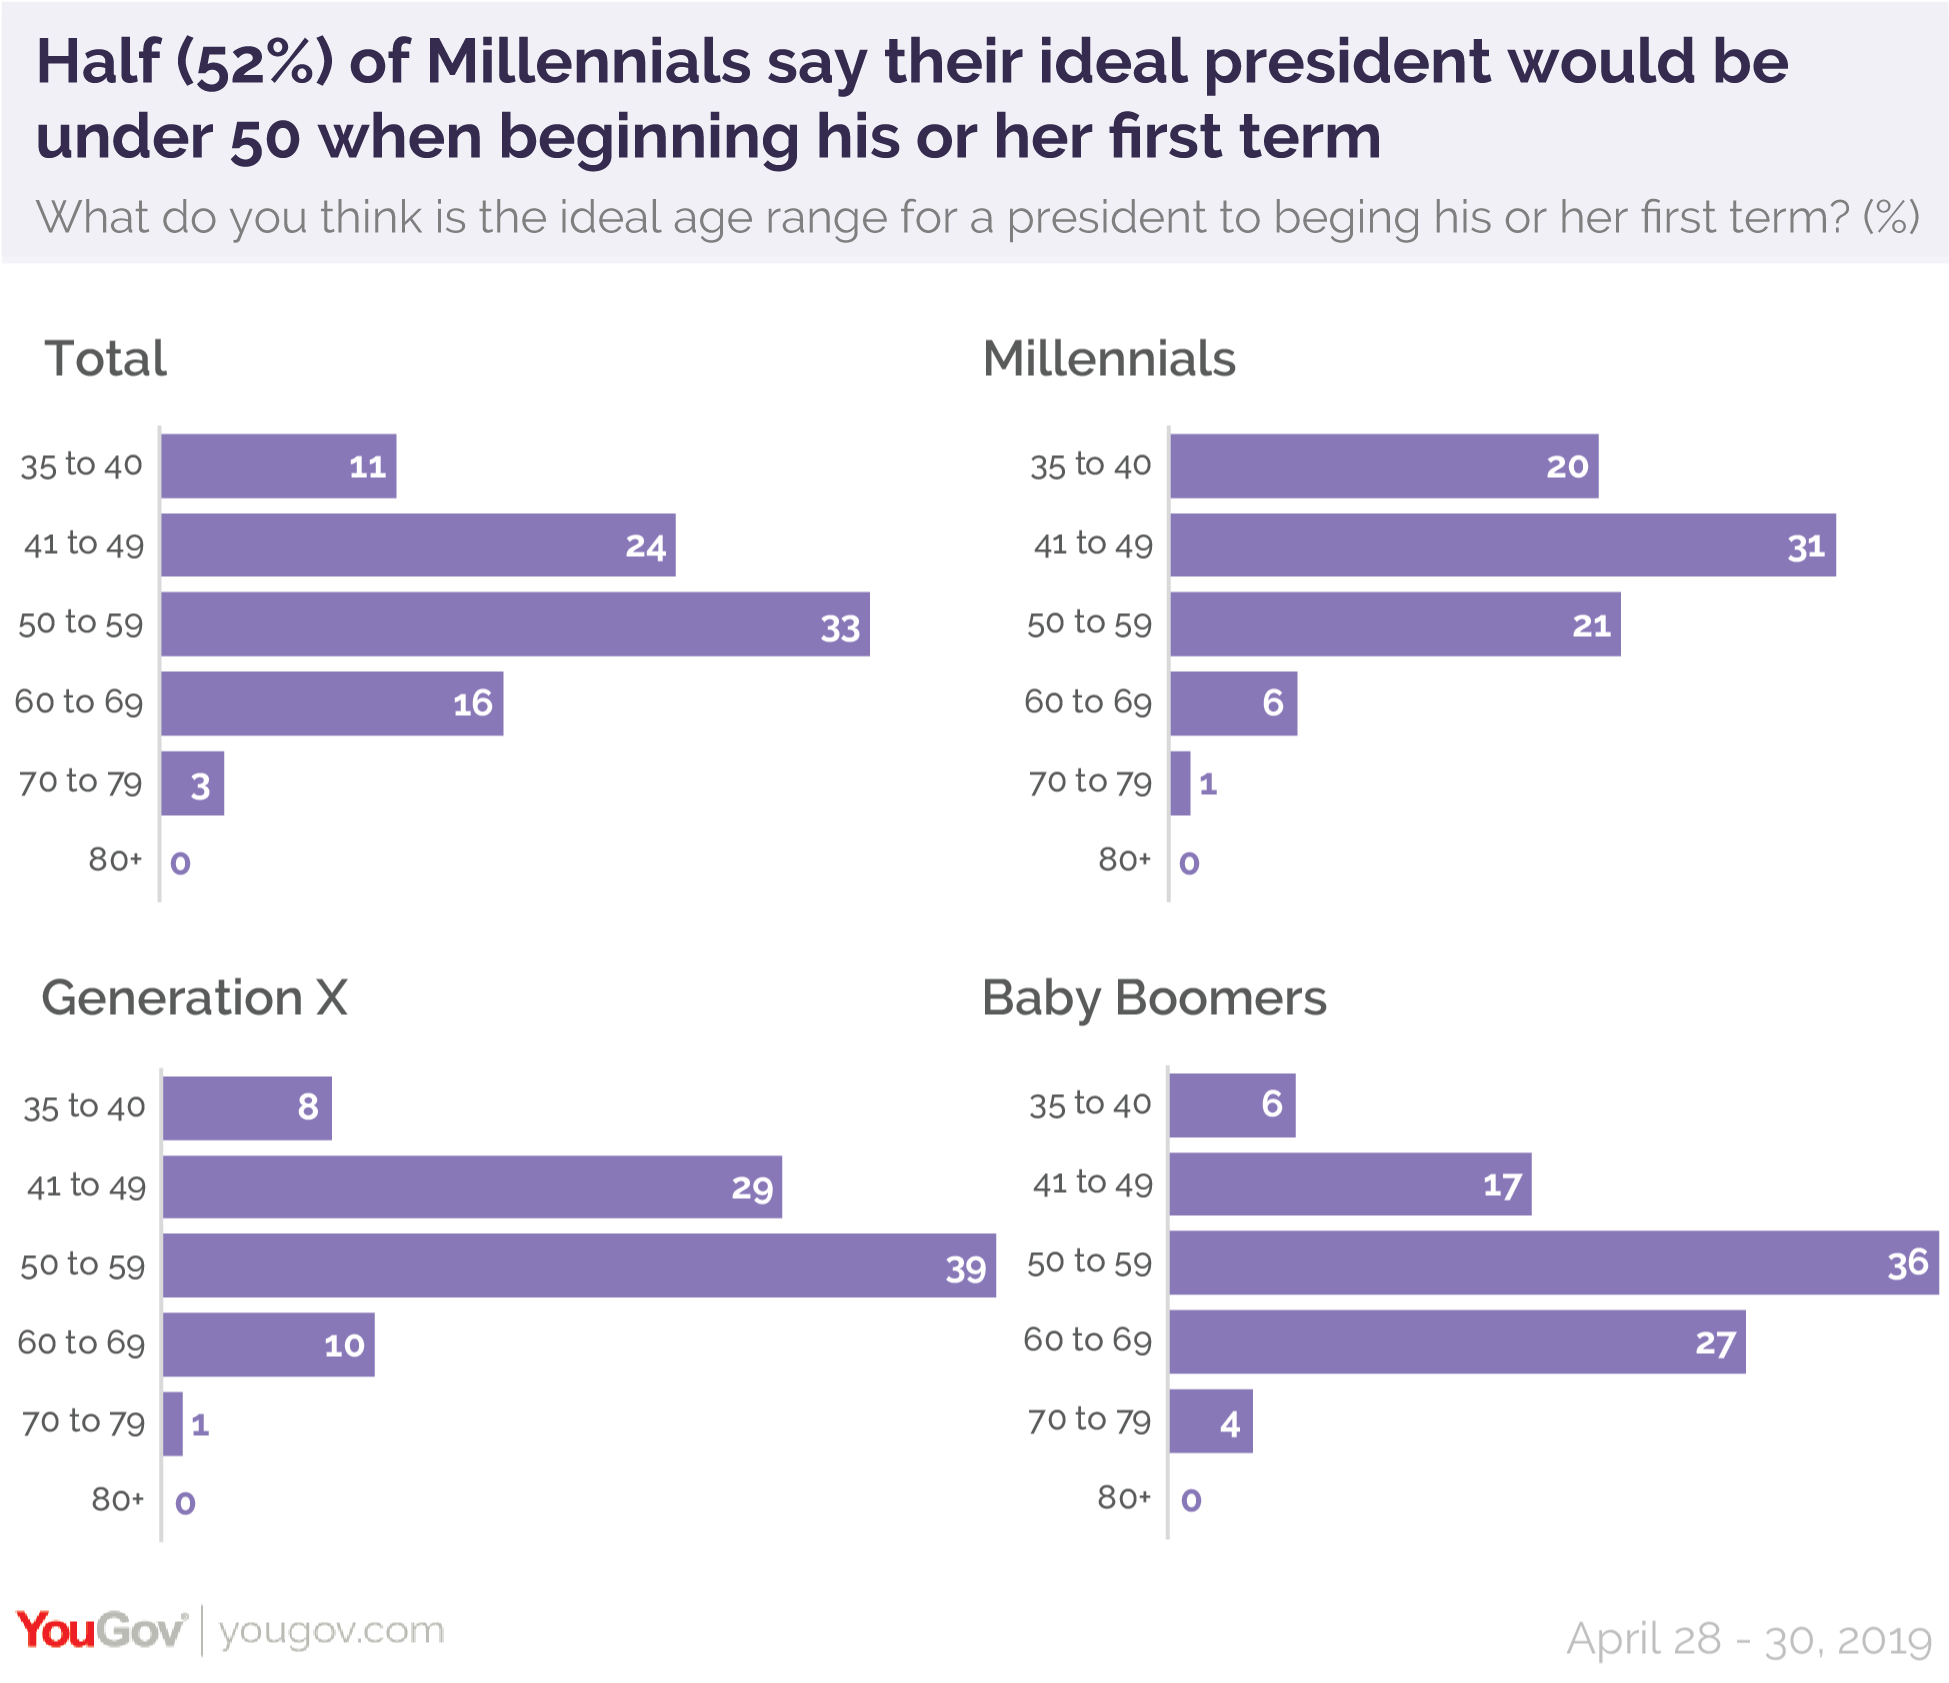 Half of Millennials say their ideal president would be under 50 when beginning his or her first term